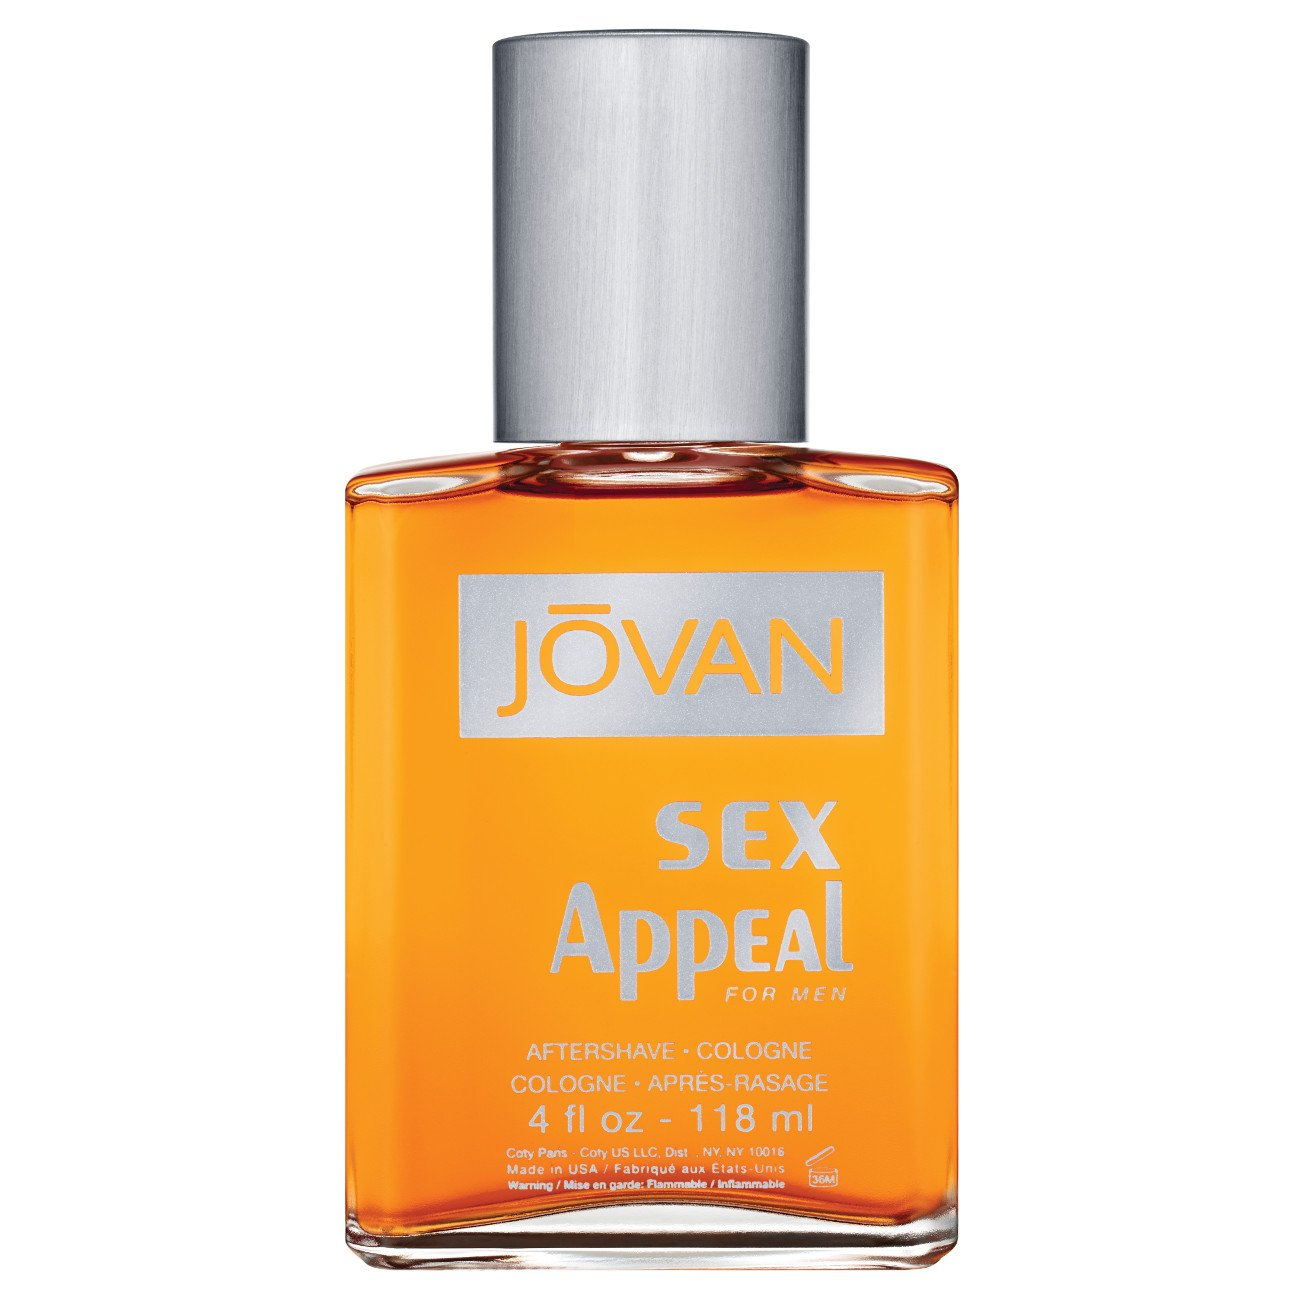 Jovan Musk for Men, After Shave Cologne, Sex Appeal, 4 fl. oz., Men's Fragrance with Musk, Spicy, Earthy & Woody, A Sexually Appealing & Attractive scent, makes a great gift by Jovan